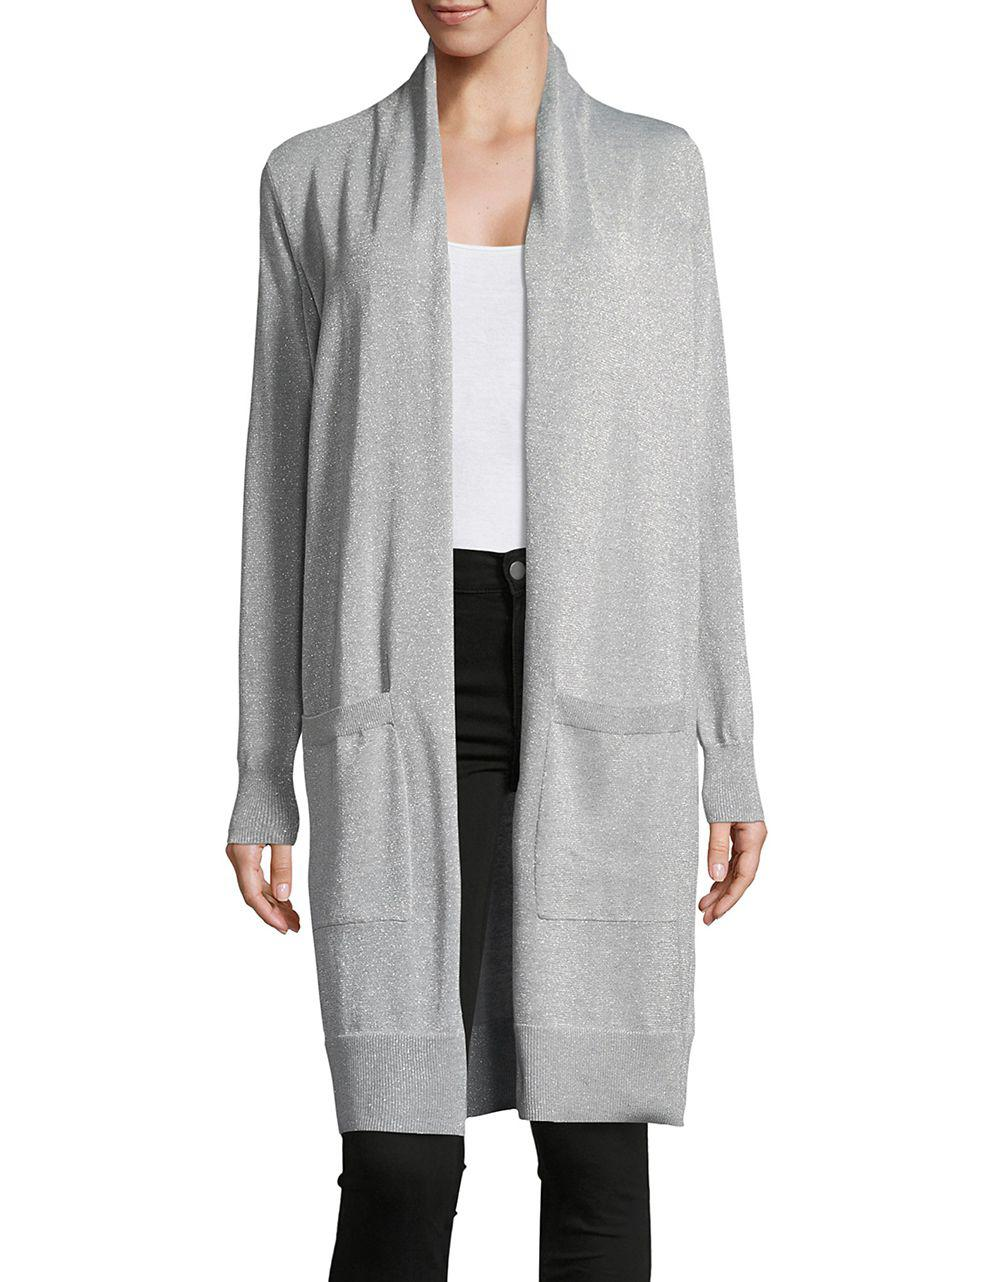 Michael michael kors Knit Open-front Duster Cardigan in Gray | Lyst